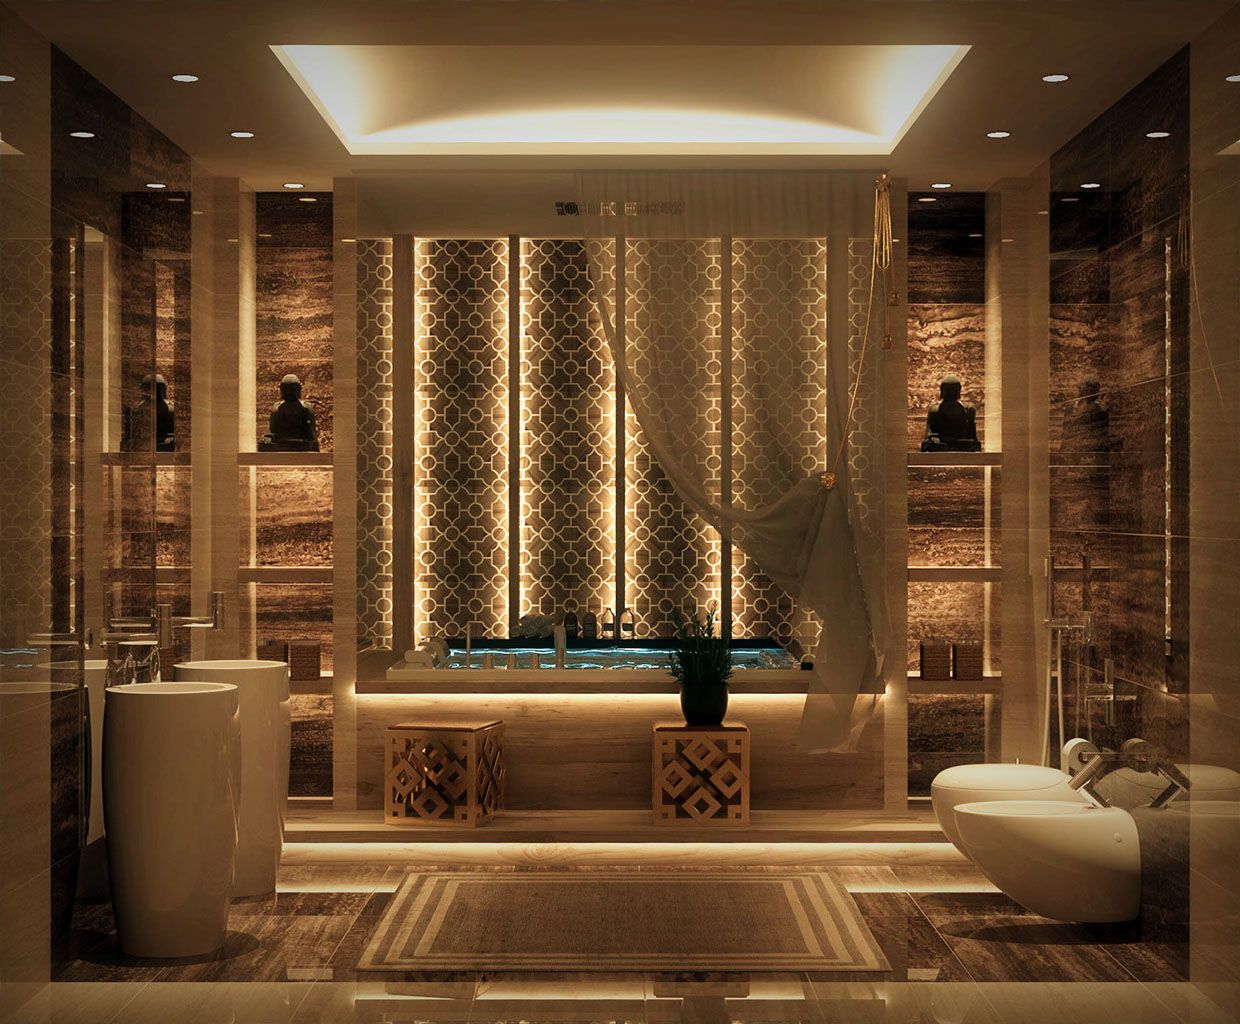 Pictures Of Luxury Bathrooms Entrancing Luxurious Bathrooms With Stunning Design Details Decorating Inspiration